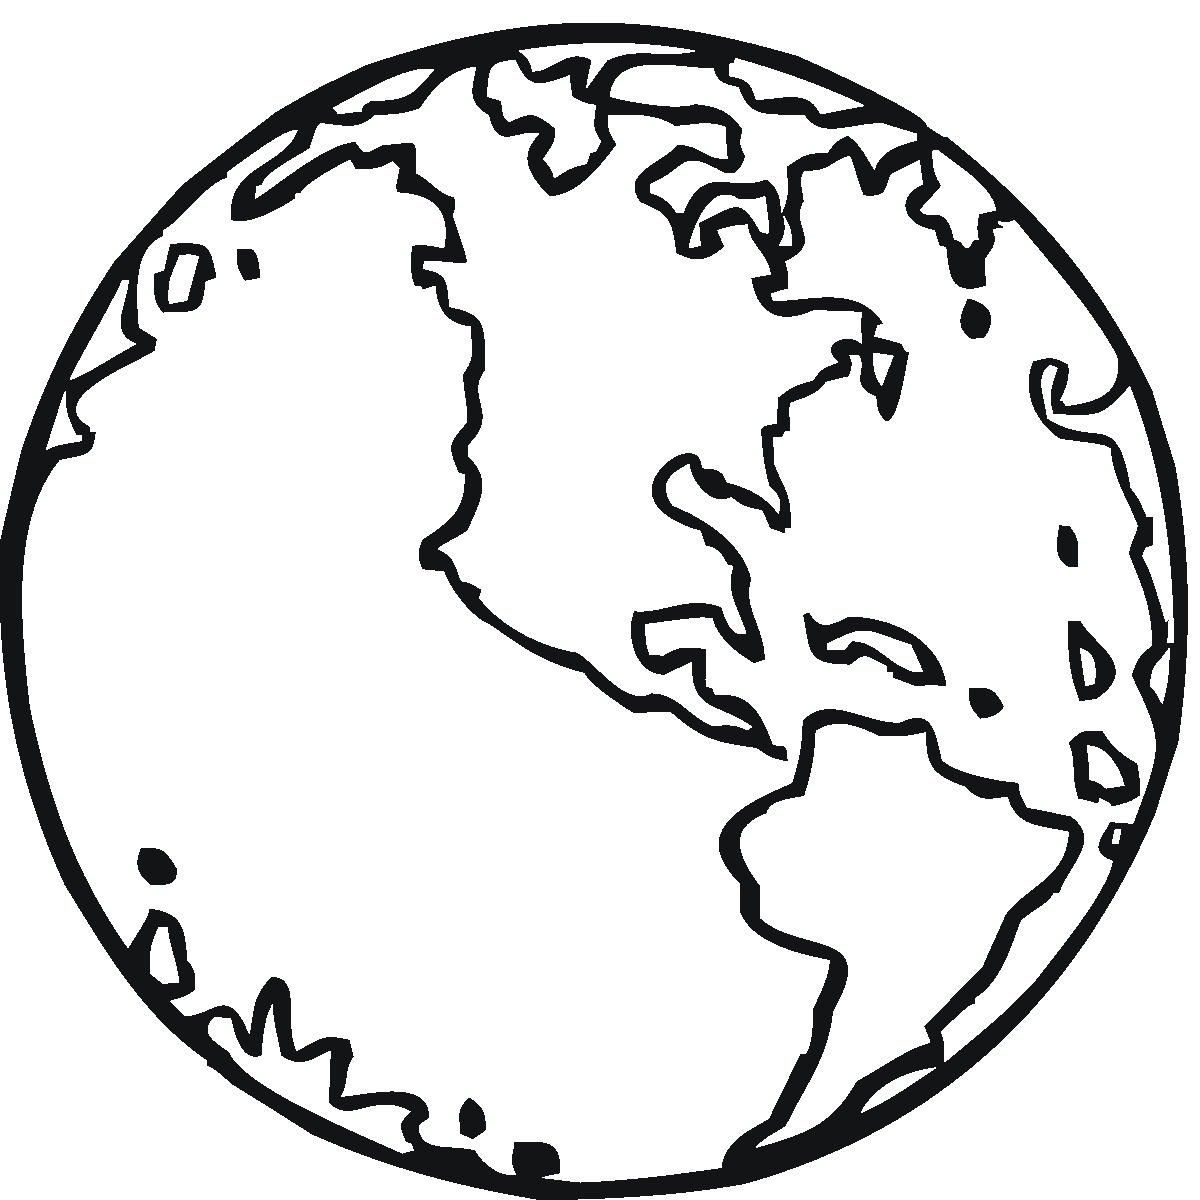 Free Printable Earth Coloring Pages For Kids | Stuff | Pinterest - Free Printable Earth Pictures